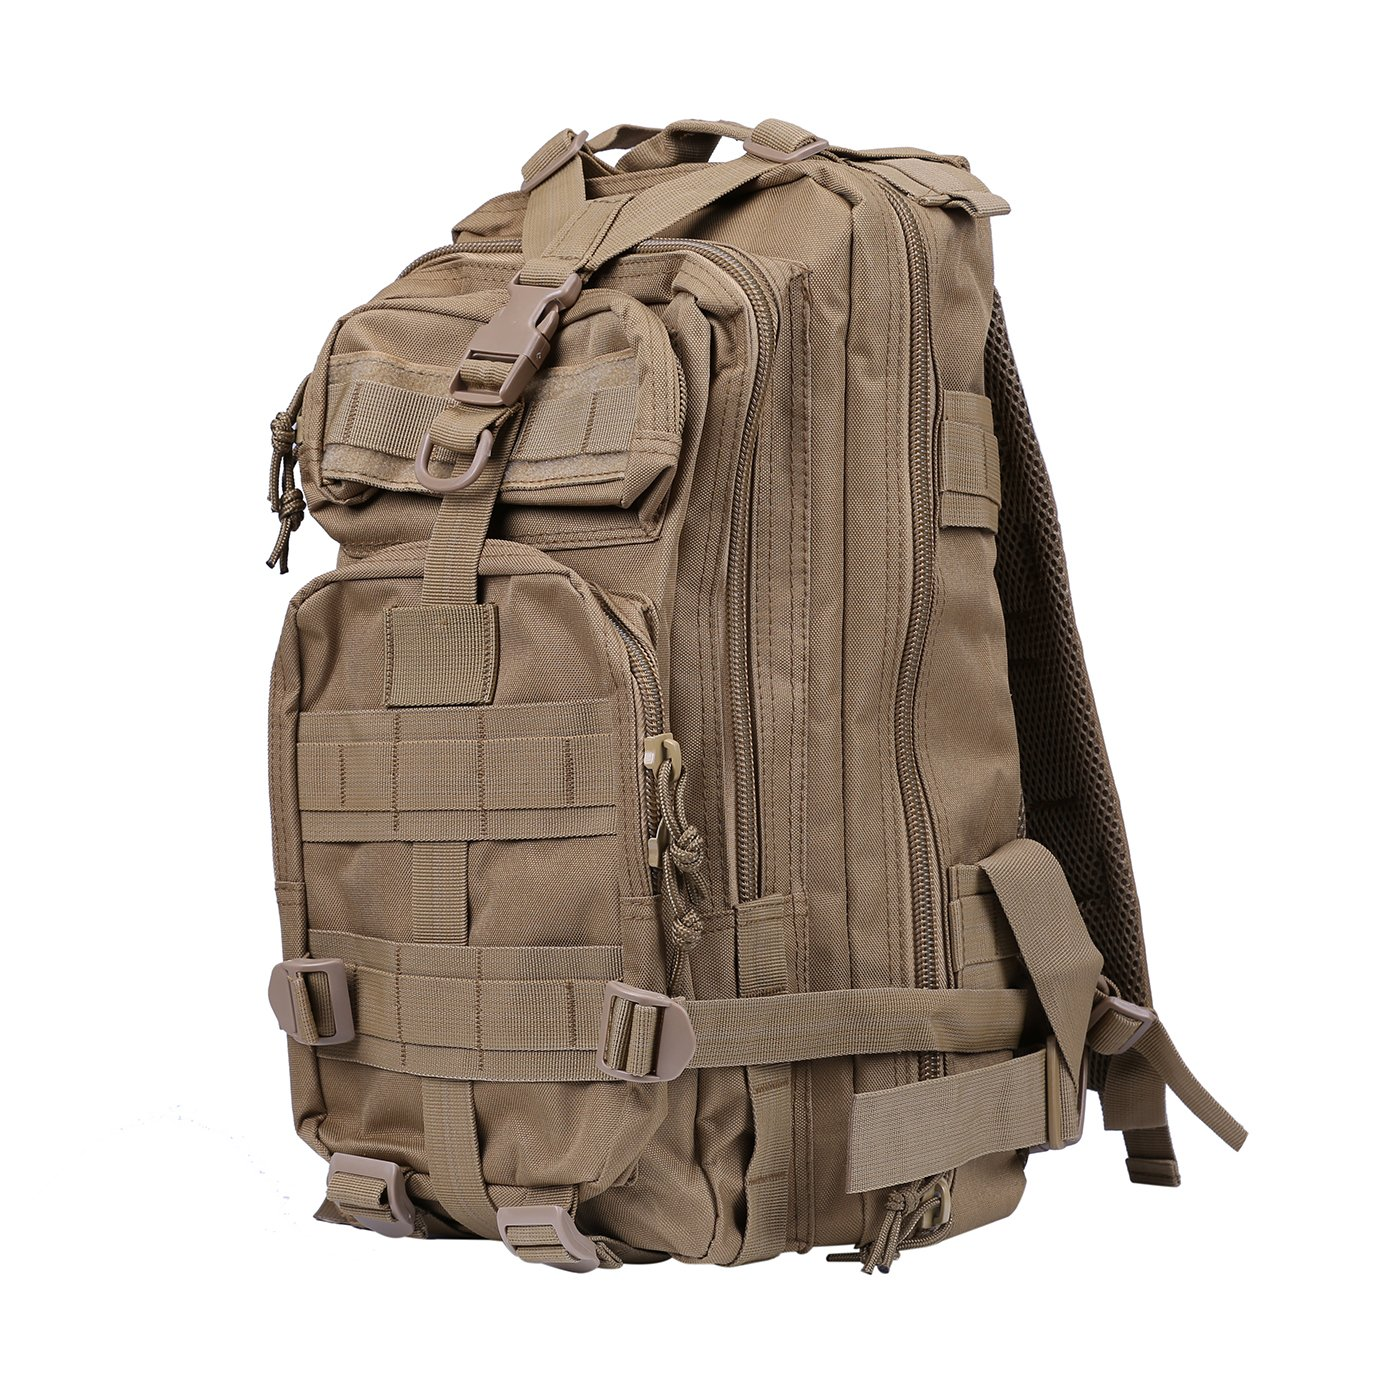 Camping Trekking and Traveling Hiking HDE Military Tactical Backpack Expandable Small Lightweight Assault Pack 20L MOLLE Combat Bug Out Bag for Outdoors